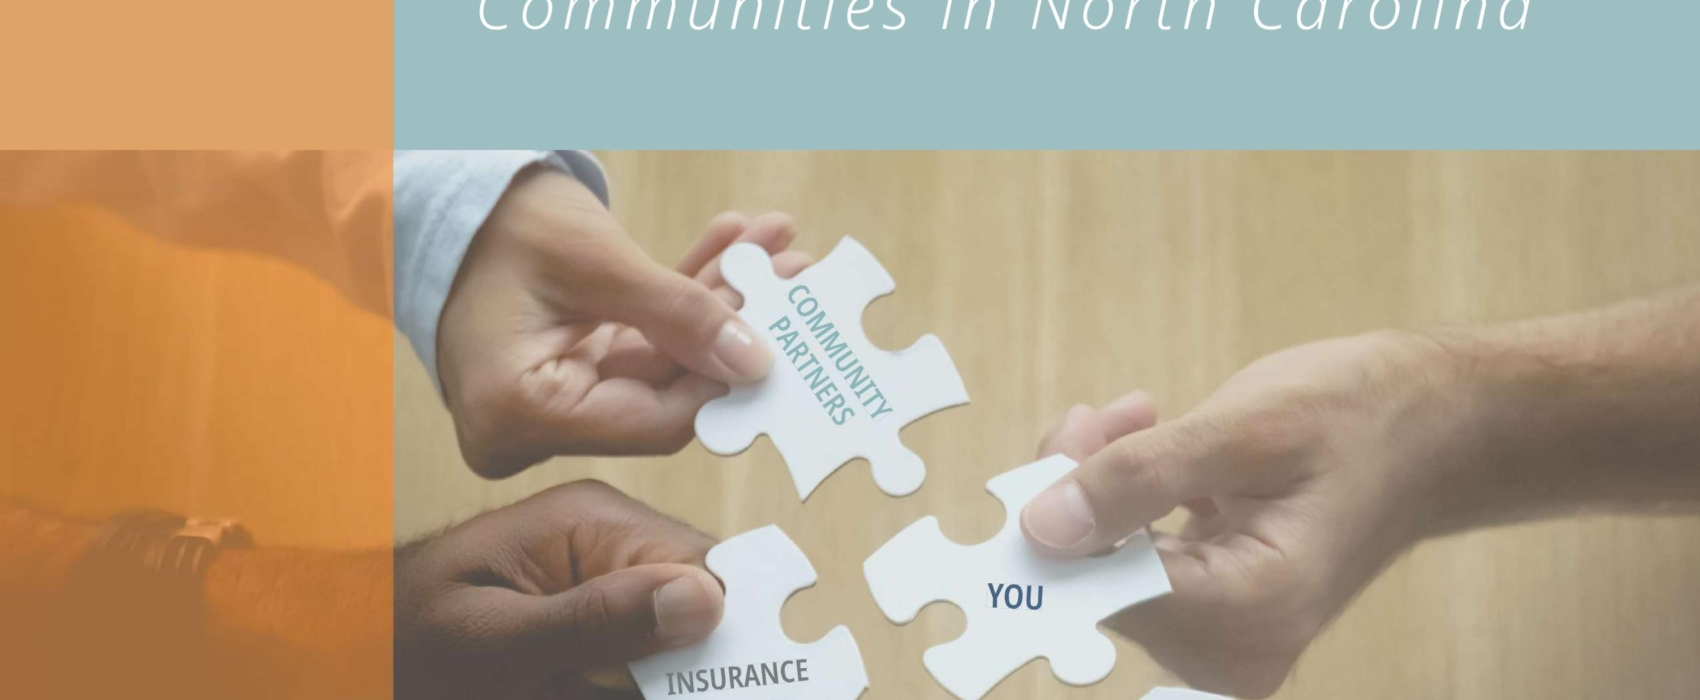 Partnering to Improve Health: Developing Accountable Care Communities in North Carolina